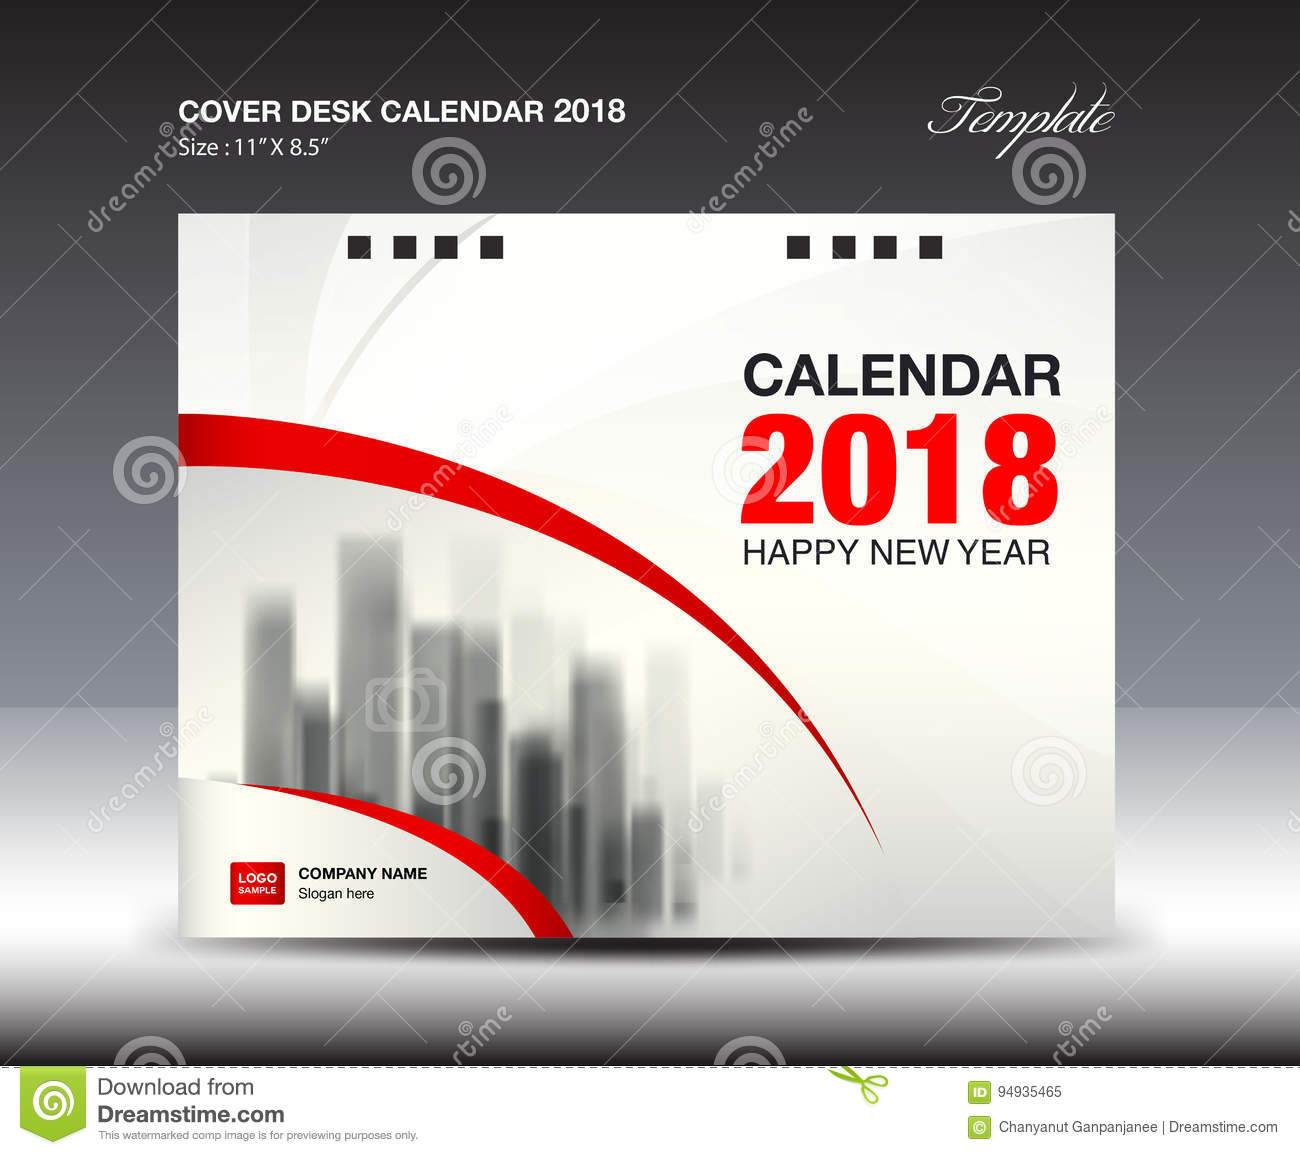 Corporate Calendar 2018 : Spa cartoons illustrations vector stock images